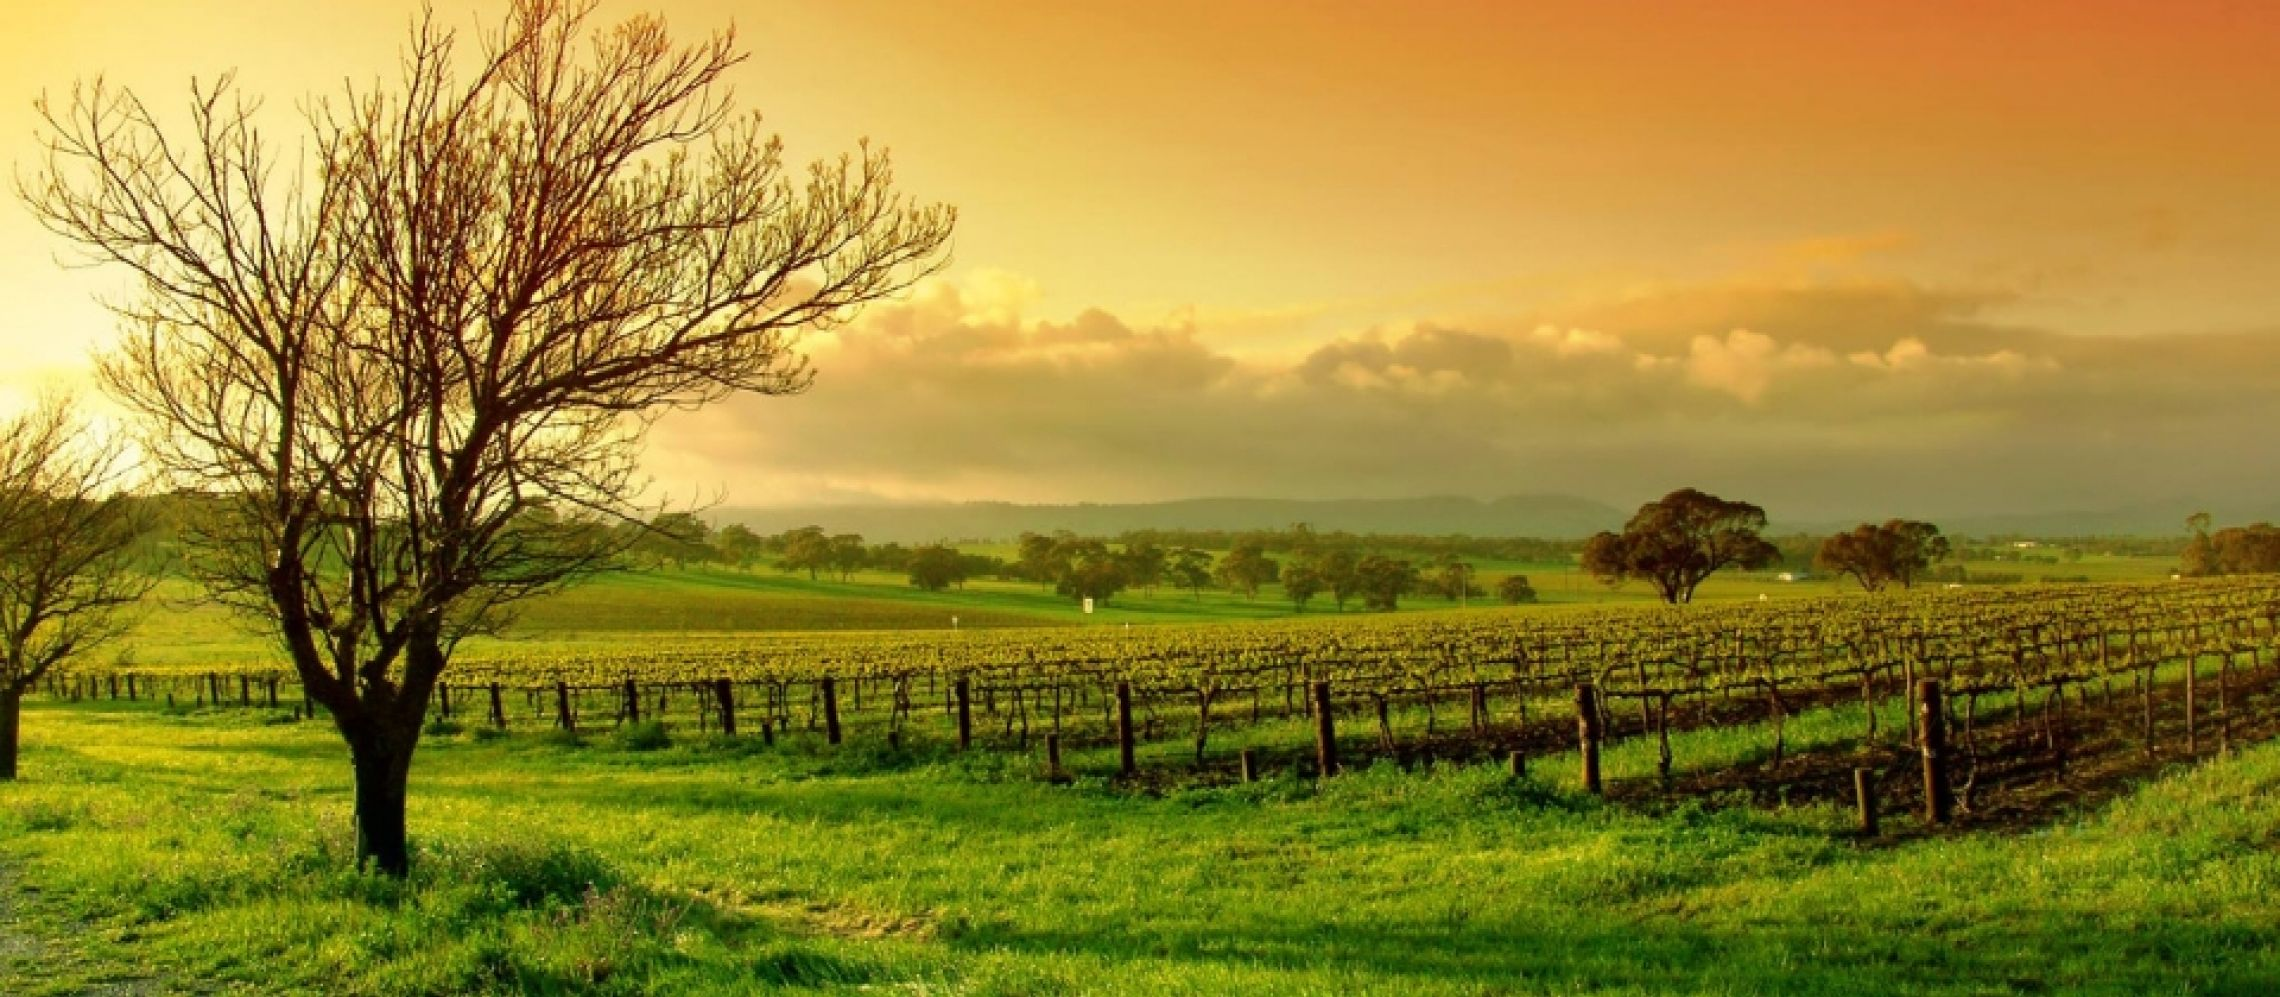 Photo for: Allegiance Wines- Committed To Combine Outstanding Viticulture And Wine-making